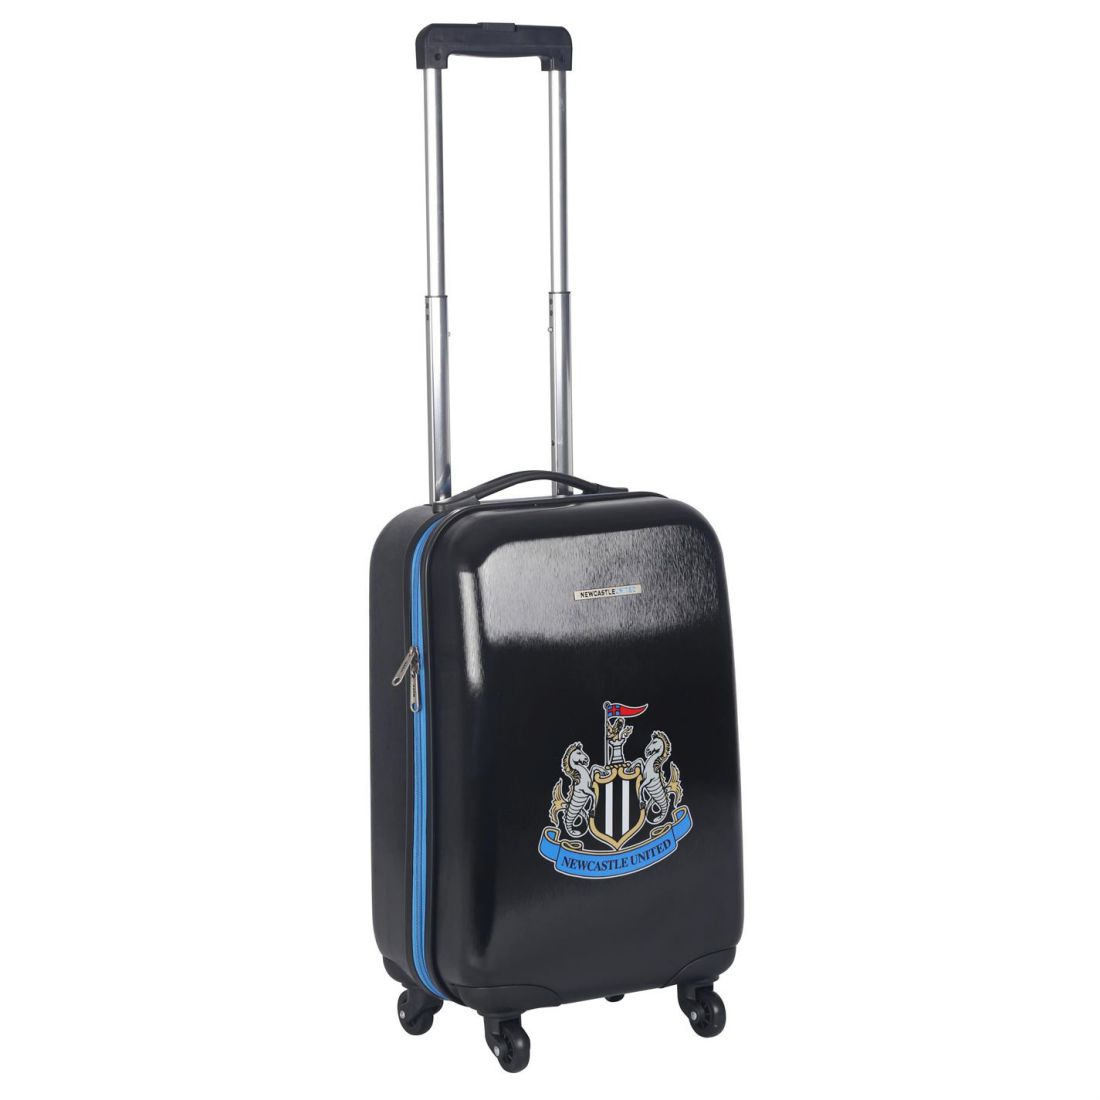 a03d1b220e Details about NUFC Hard Suitcase Football Case Wheeled Travel Trolley Luggage  Bag Accessories